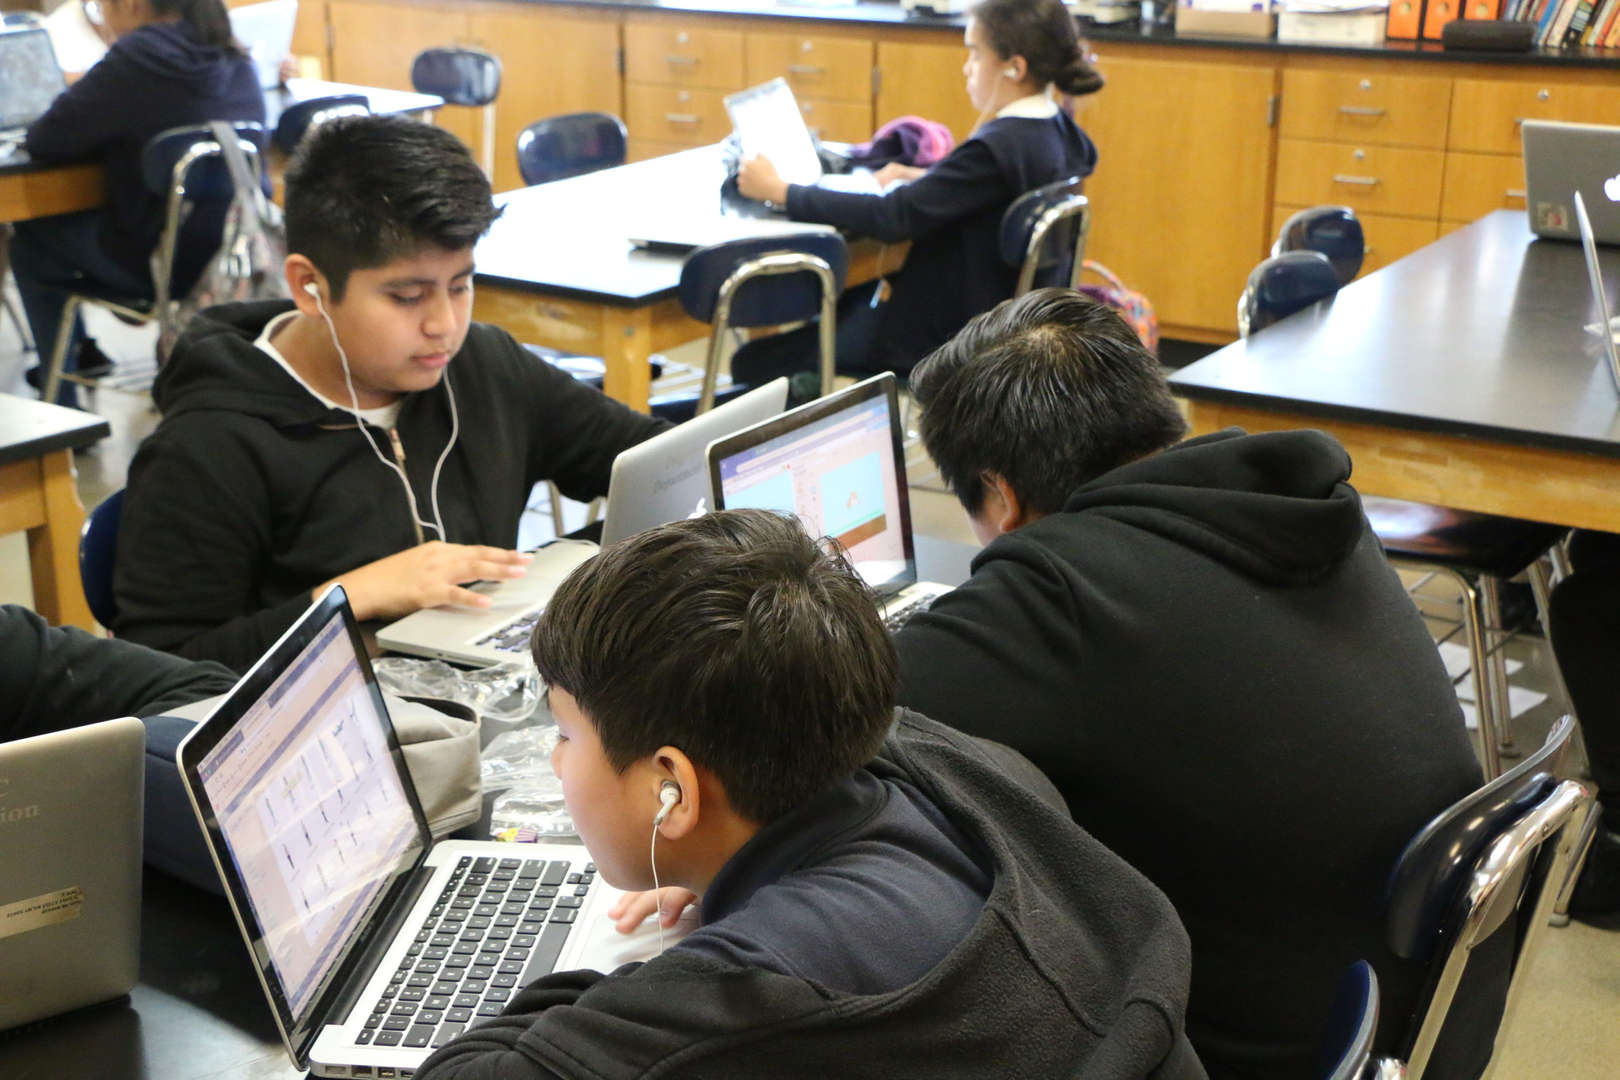 Students work on their laptops in class